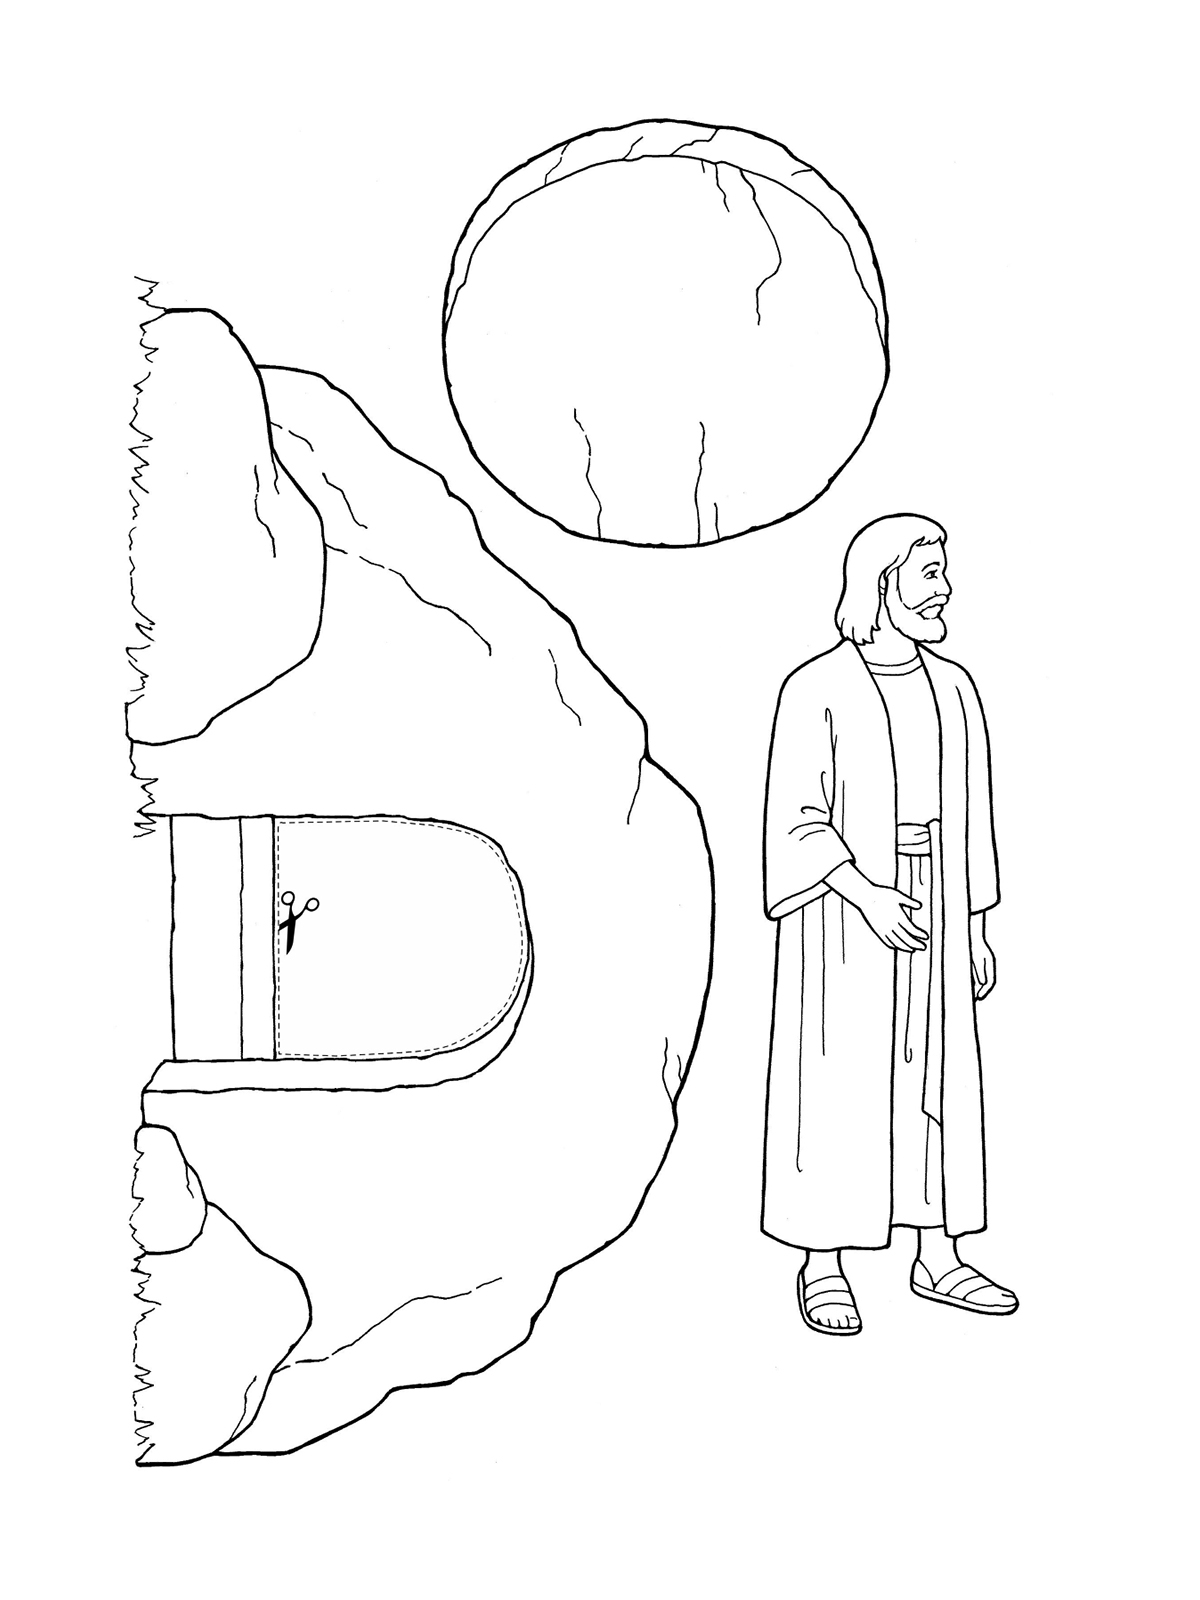 Nursery Manual Page 123: Jesus Christ Was Resurrected